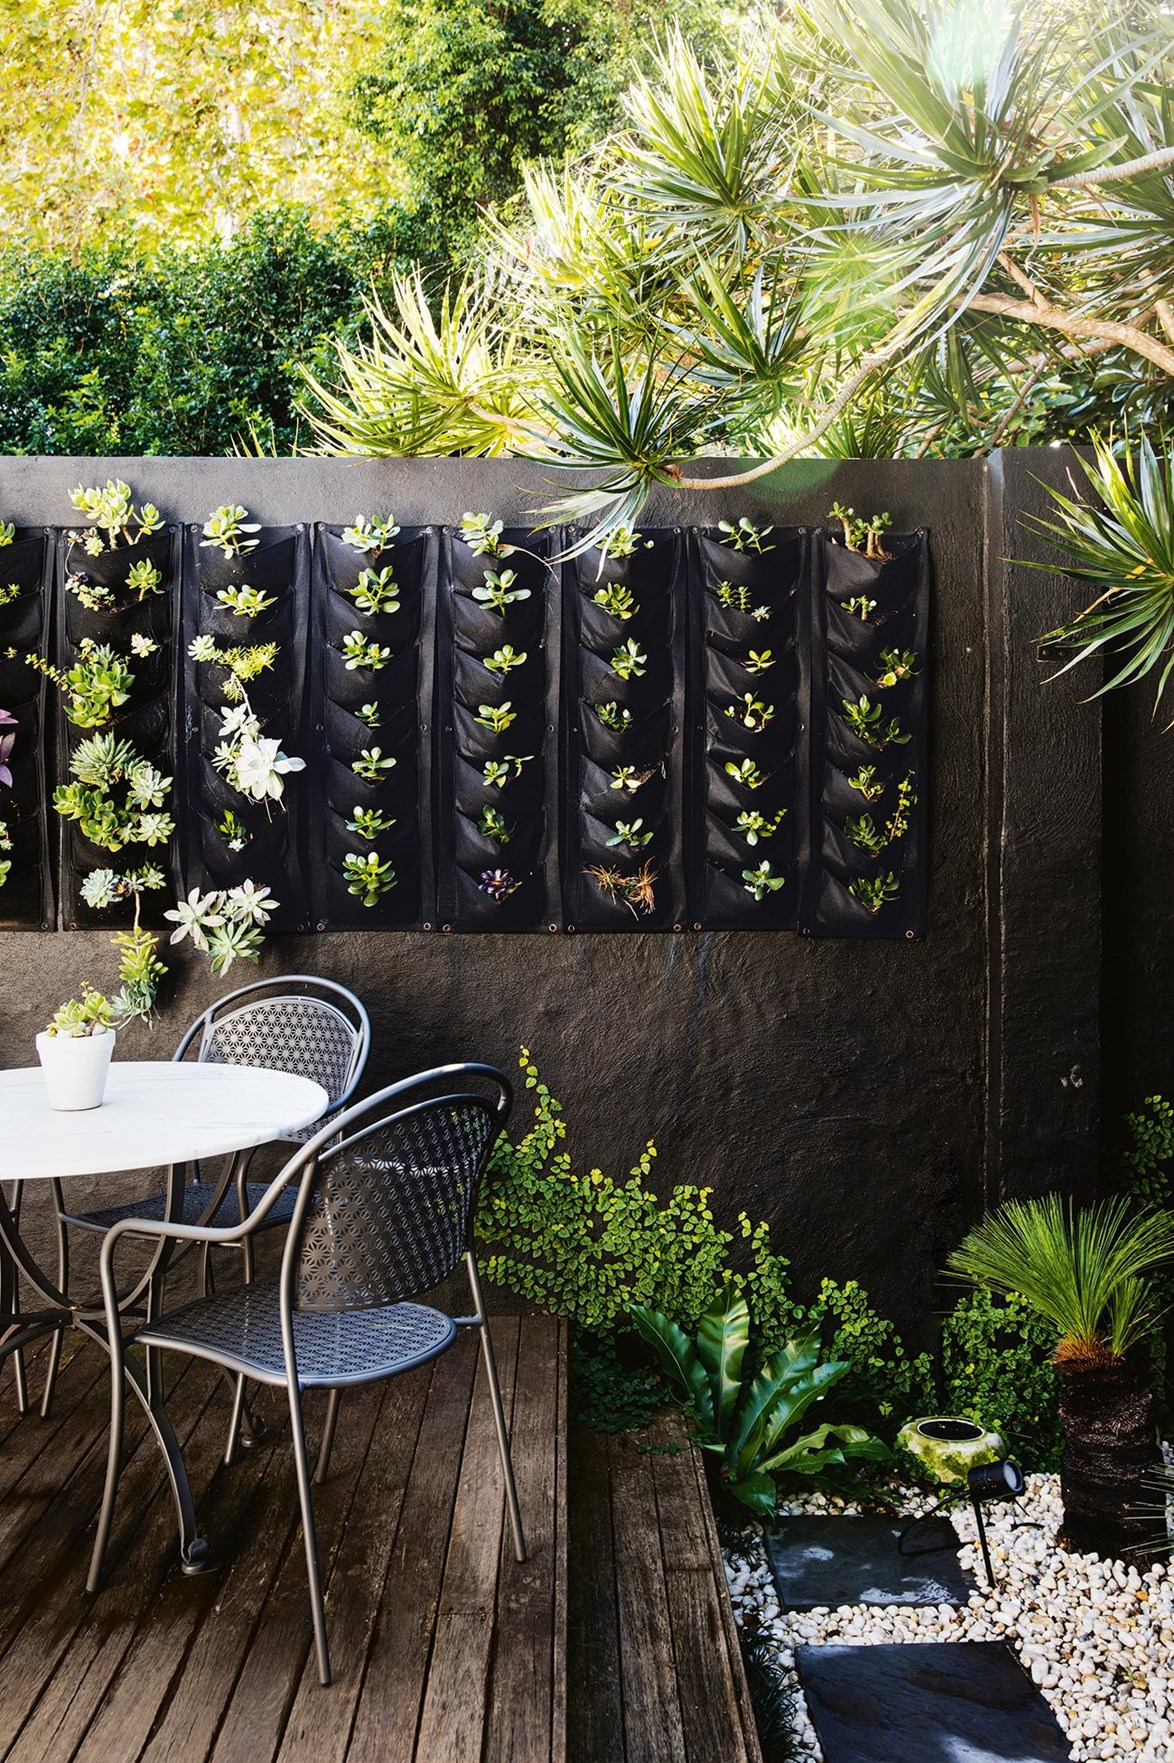 """<p>**VERTICAL GARDEN**<P> <p>When you've got nowhere to go but up, you're in a good place! Vertical gardens are on trend right now because they allow you to cover unsightly walls *and* inject life into an otherwise boring and bland outdoor area. For a vertical garden that is low-maintenance and good looking, try [fast growing climbing plants](https://www.homestolove.com.au/fast-growing-climbing-plants-1584 target=""""_blank""""). If you're in it for the long haul, and want something more challenging, why not try one of these [10 plants perfect for vertical gardening](https://www.homestolove.com.au/10-best-plants-for-vertical-gardens-13376 target=""""_blank""""). For more, read our handy [guide to vertical gardening](https://www.homestolove.com.au/your-guide-to-vertical-gardens-3021 target=""""_blank"""").<p> <P>*Story: Inside Out*<p>"""